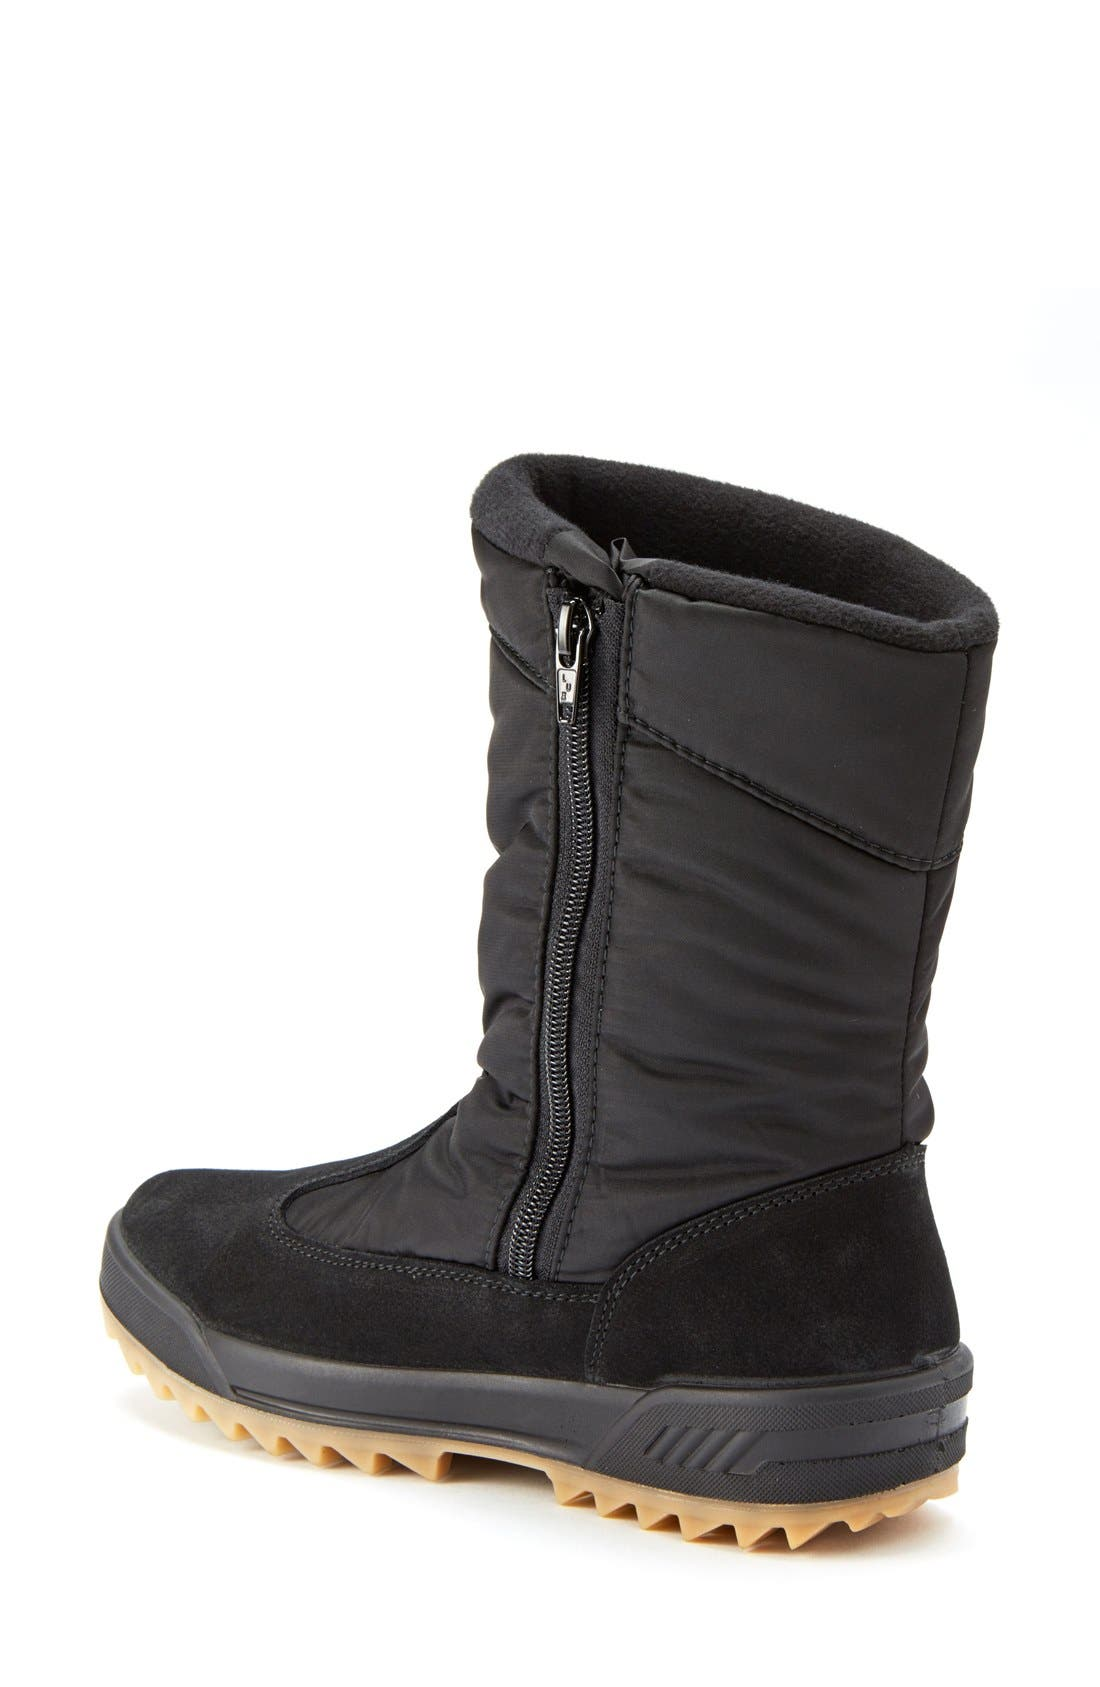 Iceland Waterproof Snow Boot,                             Alternate thumbnail 2, color,                             015